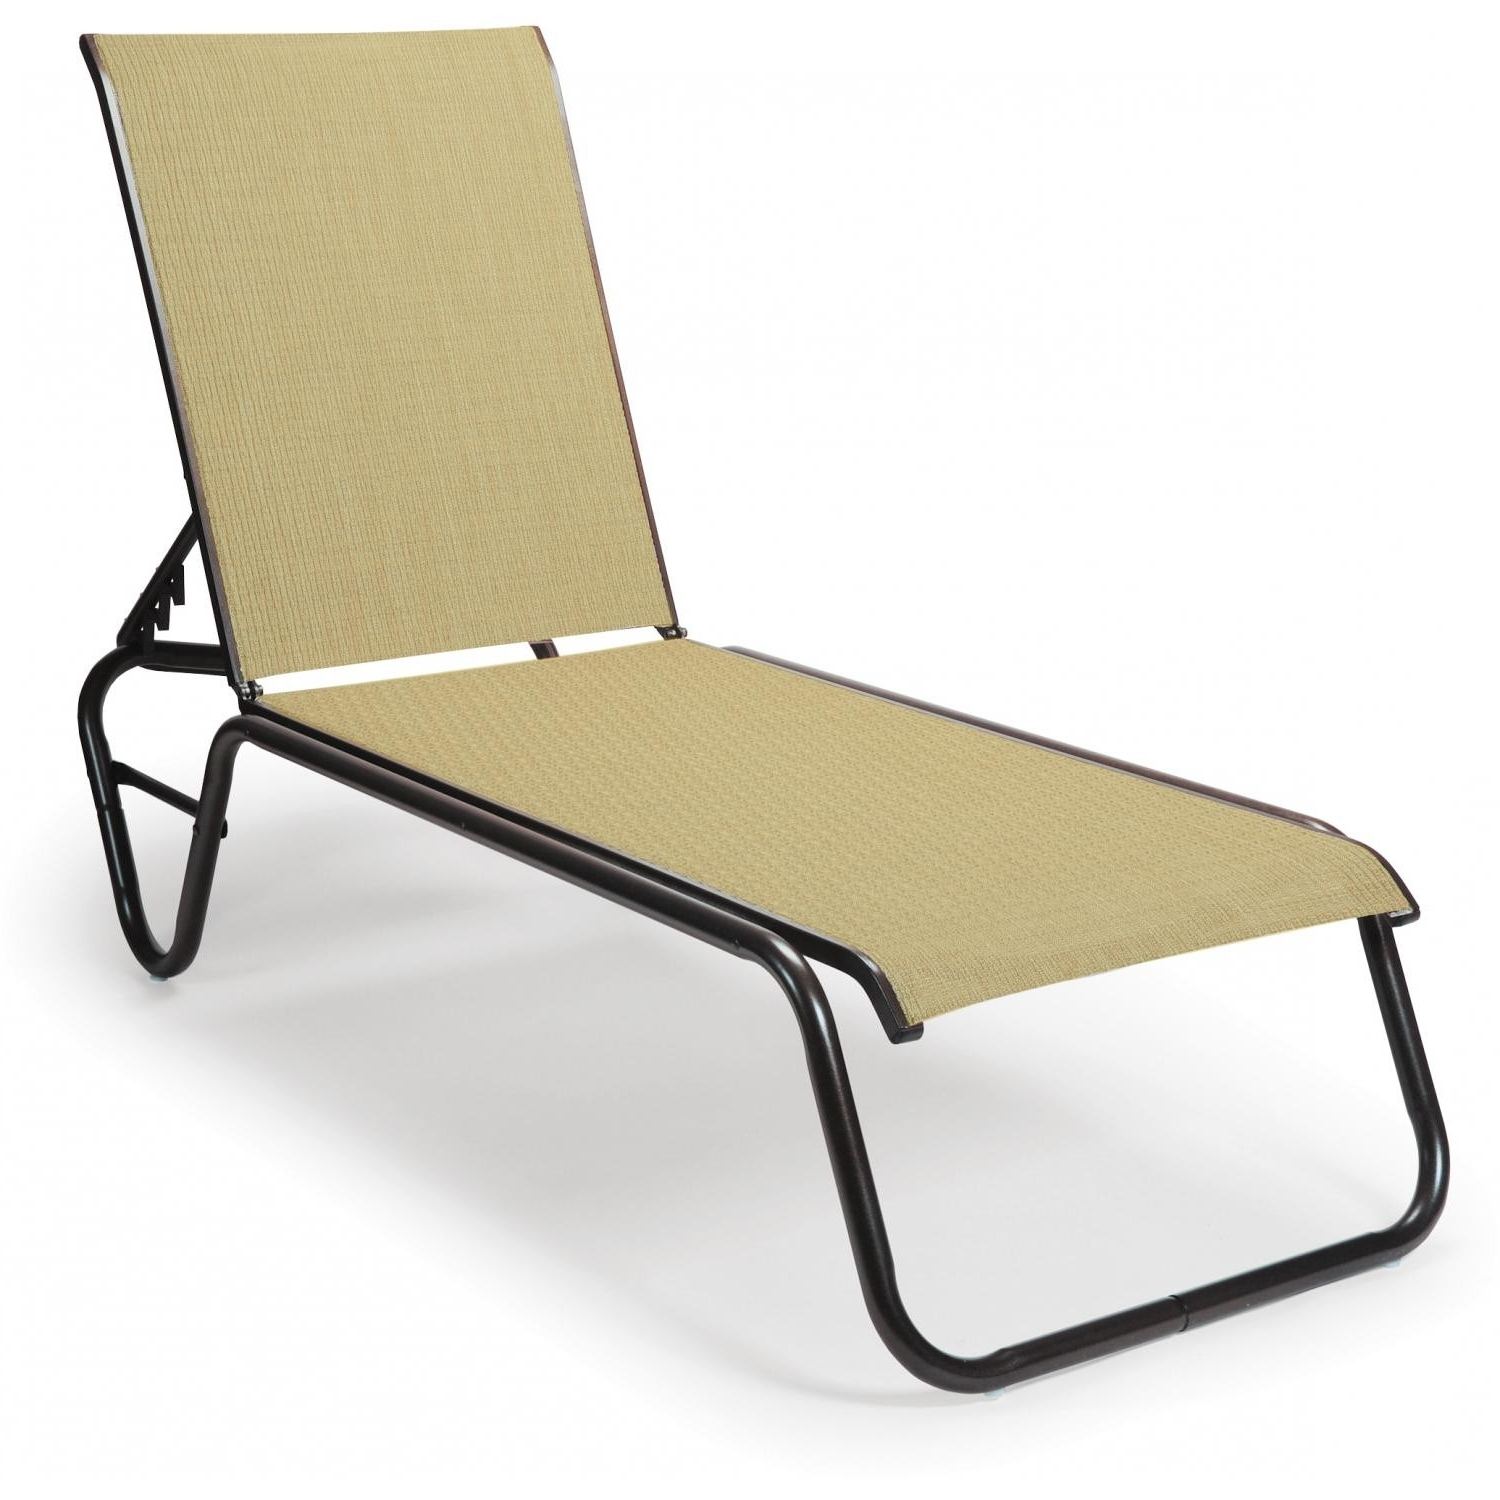 Trendy Armless Outdoor Chaise Lounge Chairs With Lounge Chair : Two Person Lounge Chair Outdoor Patio Furniture (View 11 of 15)